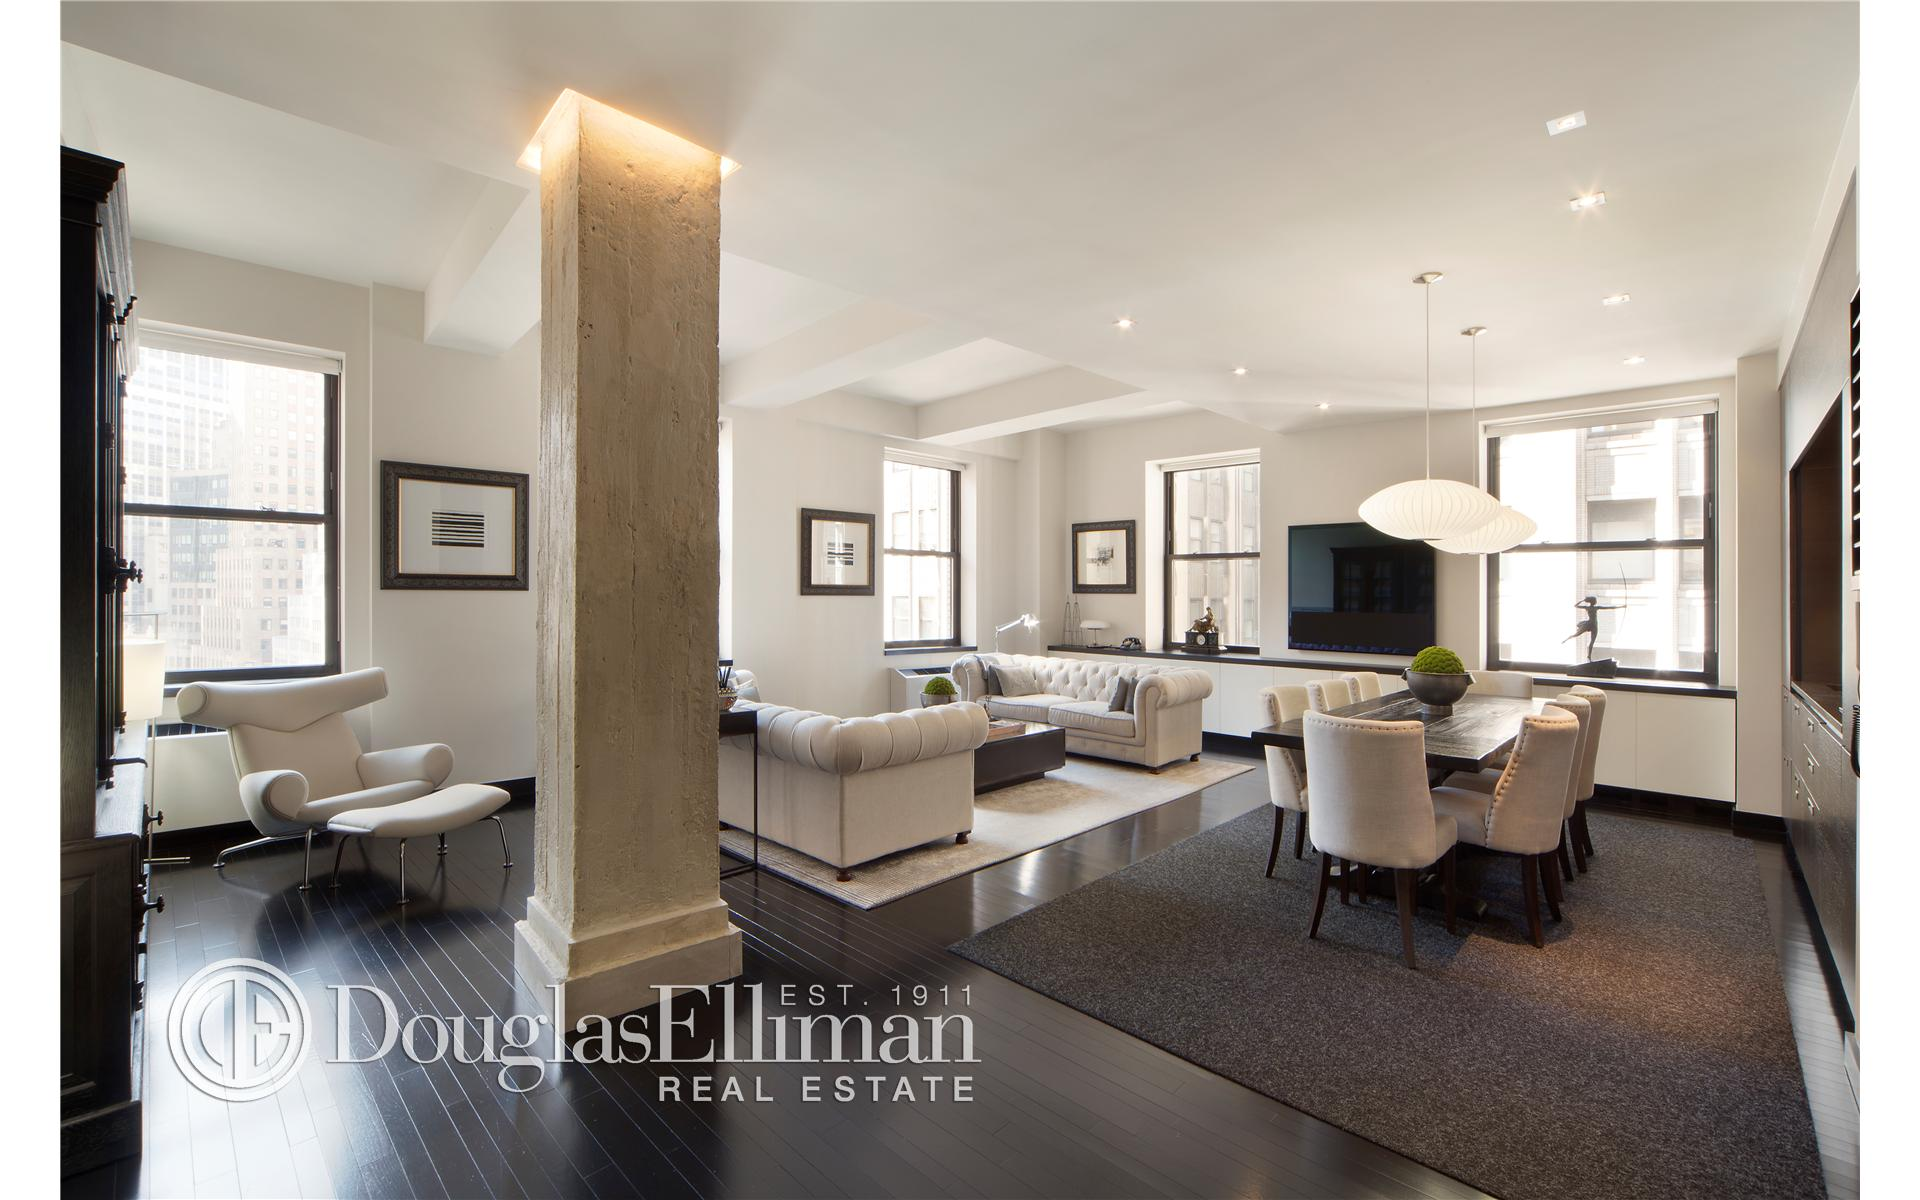 Condominium for Sale at 20 Pine - The Collection, 20 Pine - The Collection, 20 Pine Street New York, New York 10005 United States